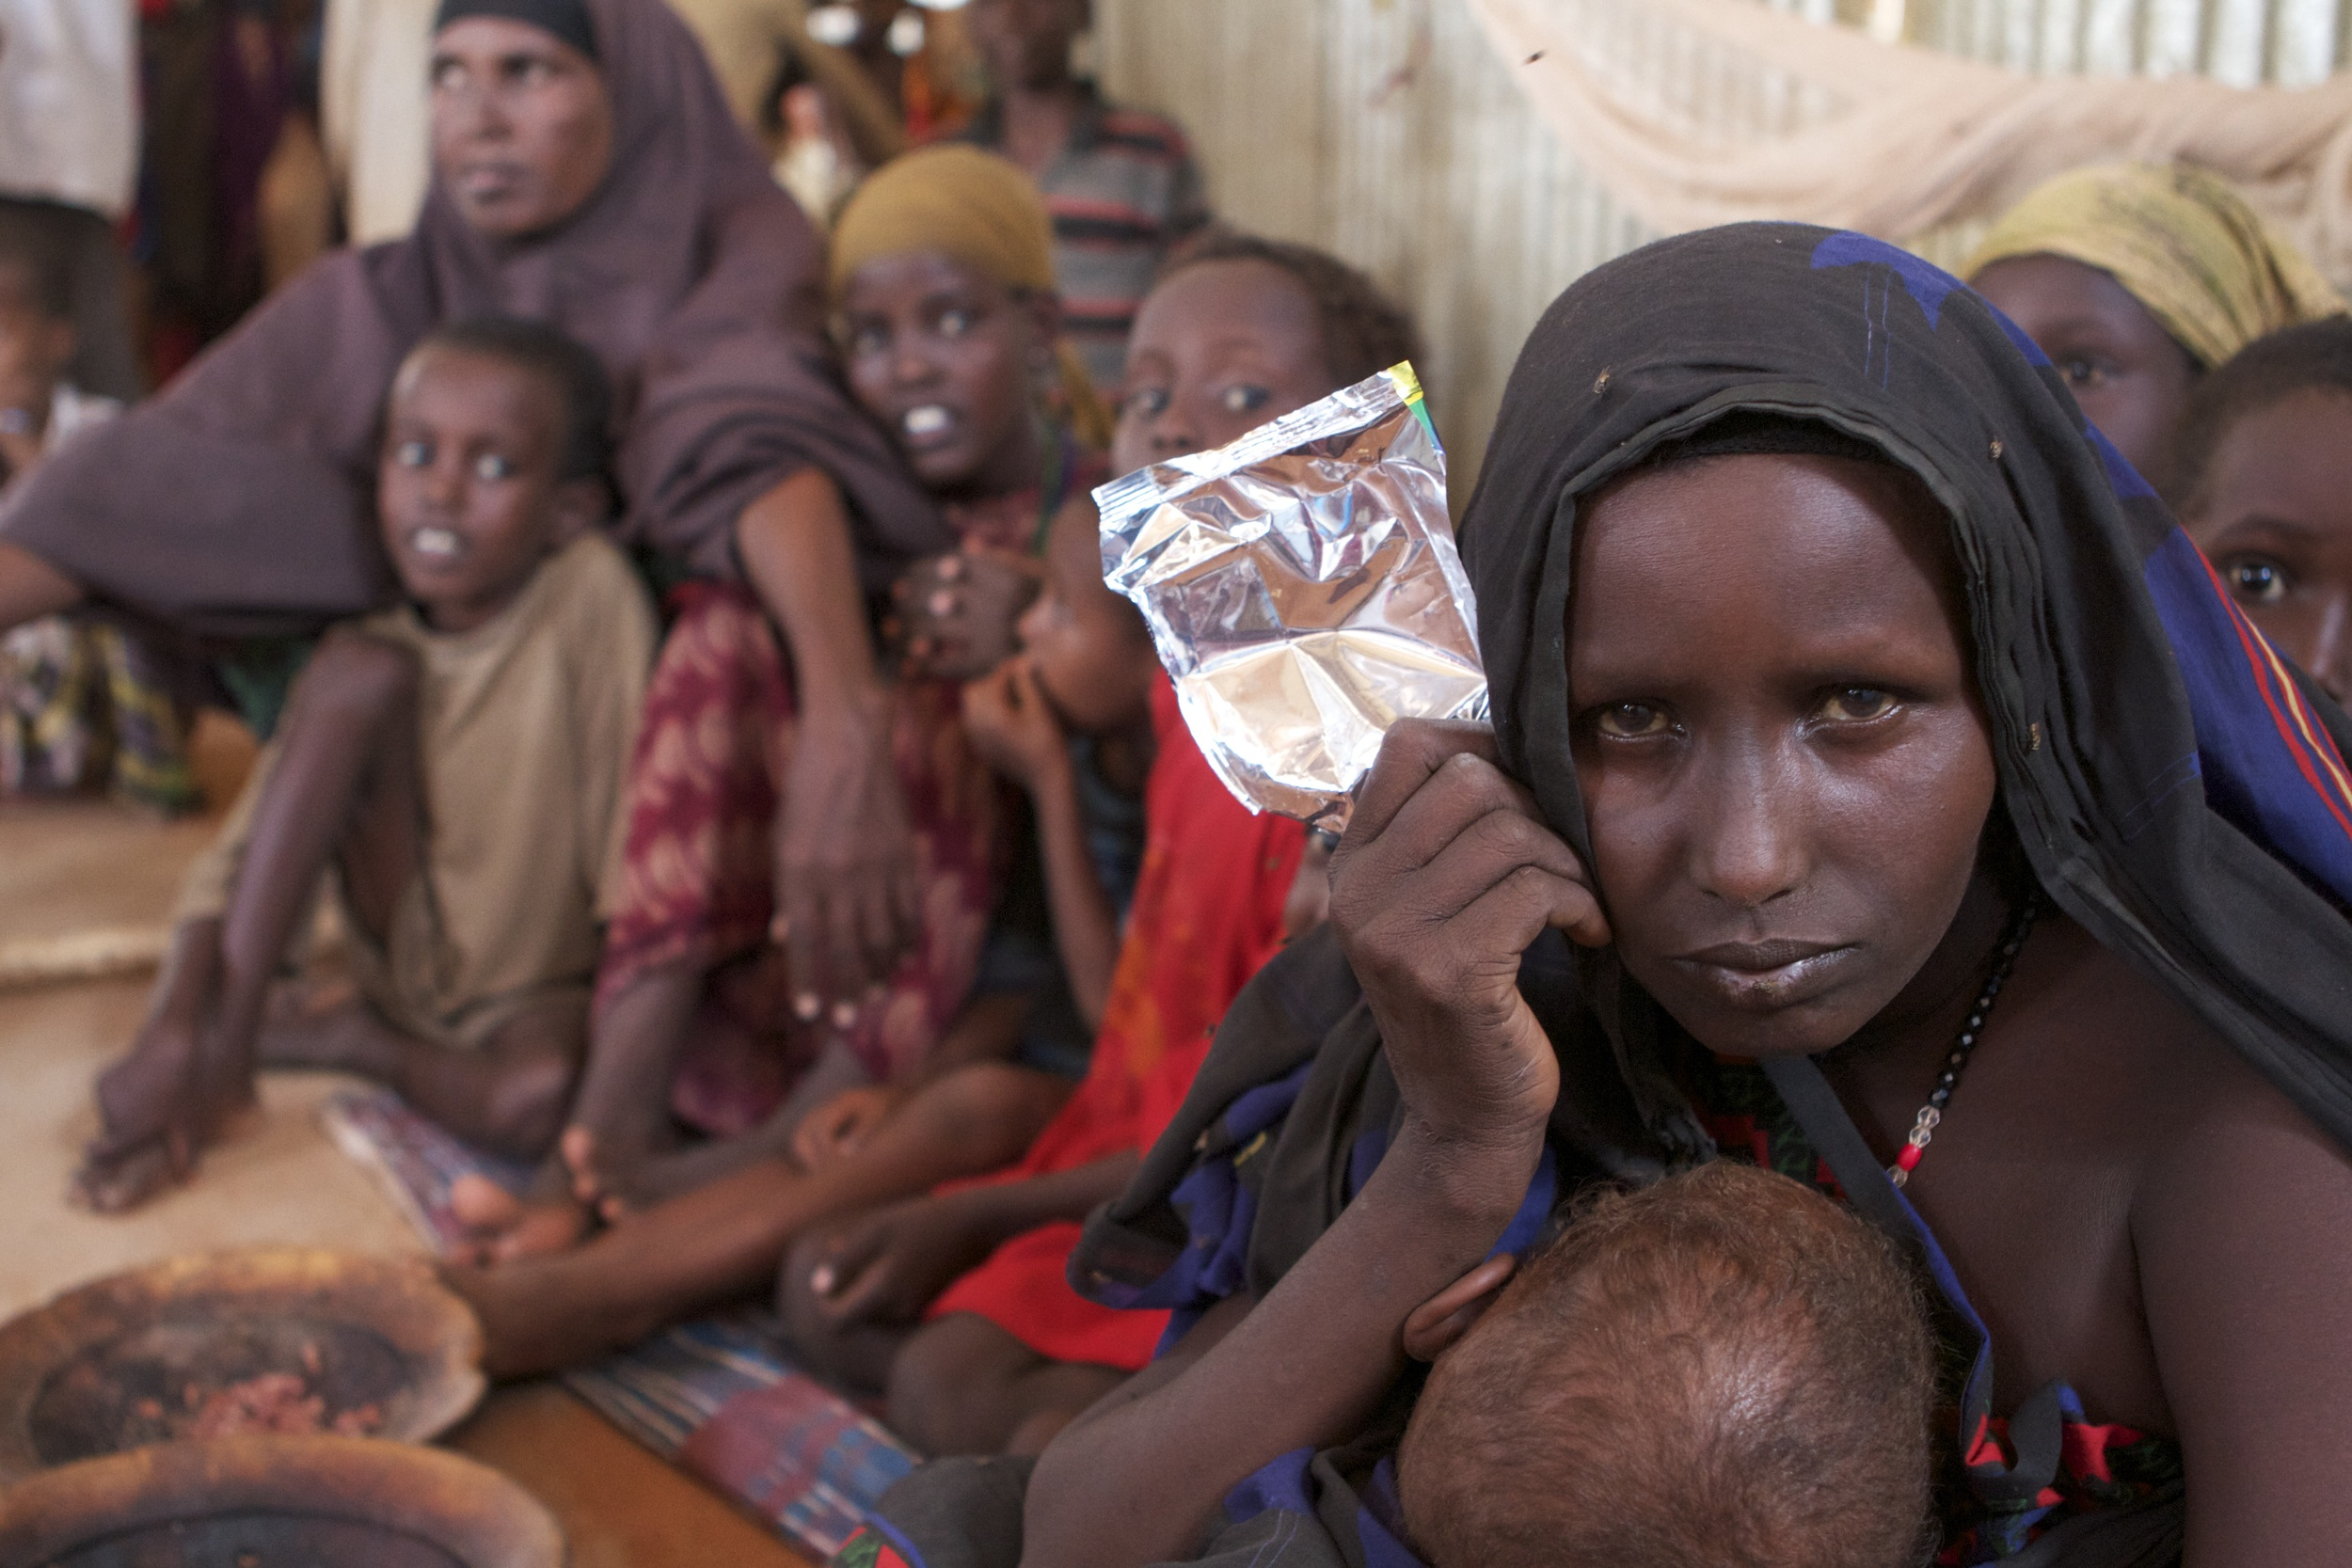 A Somali woman and her family in a communal tent in the Dolo Ado refugee camp. Her family had to walk for over 10 days to reach the camp, during the 2011 famine